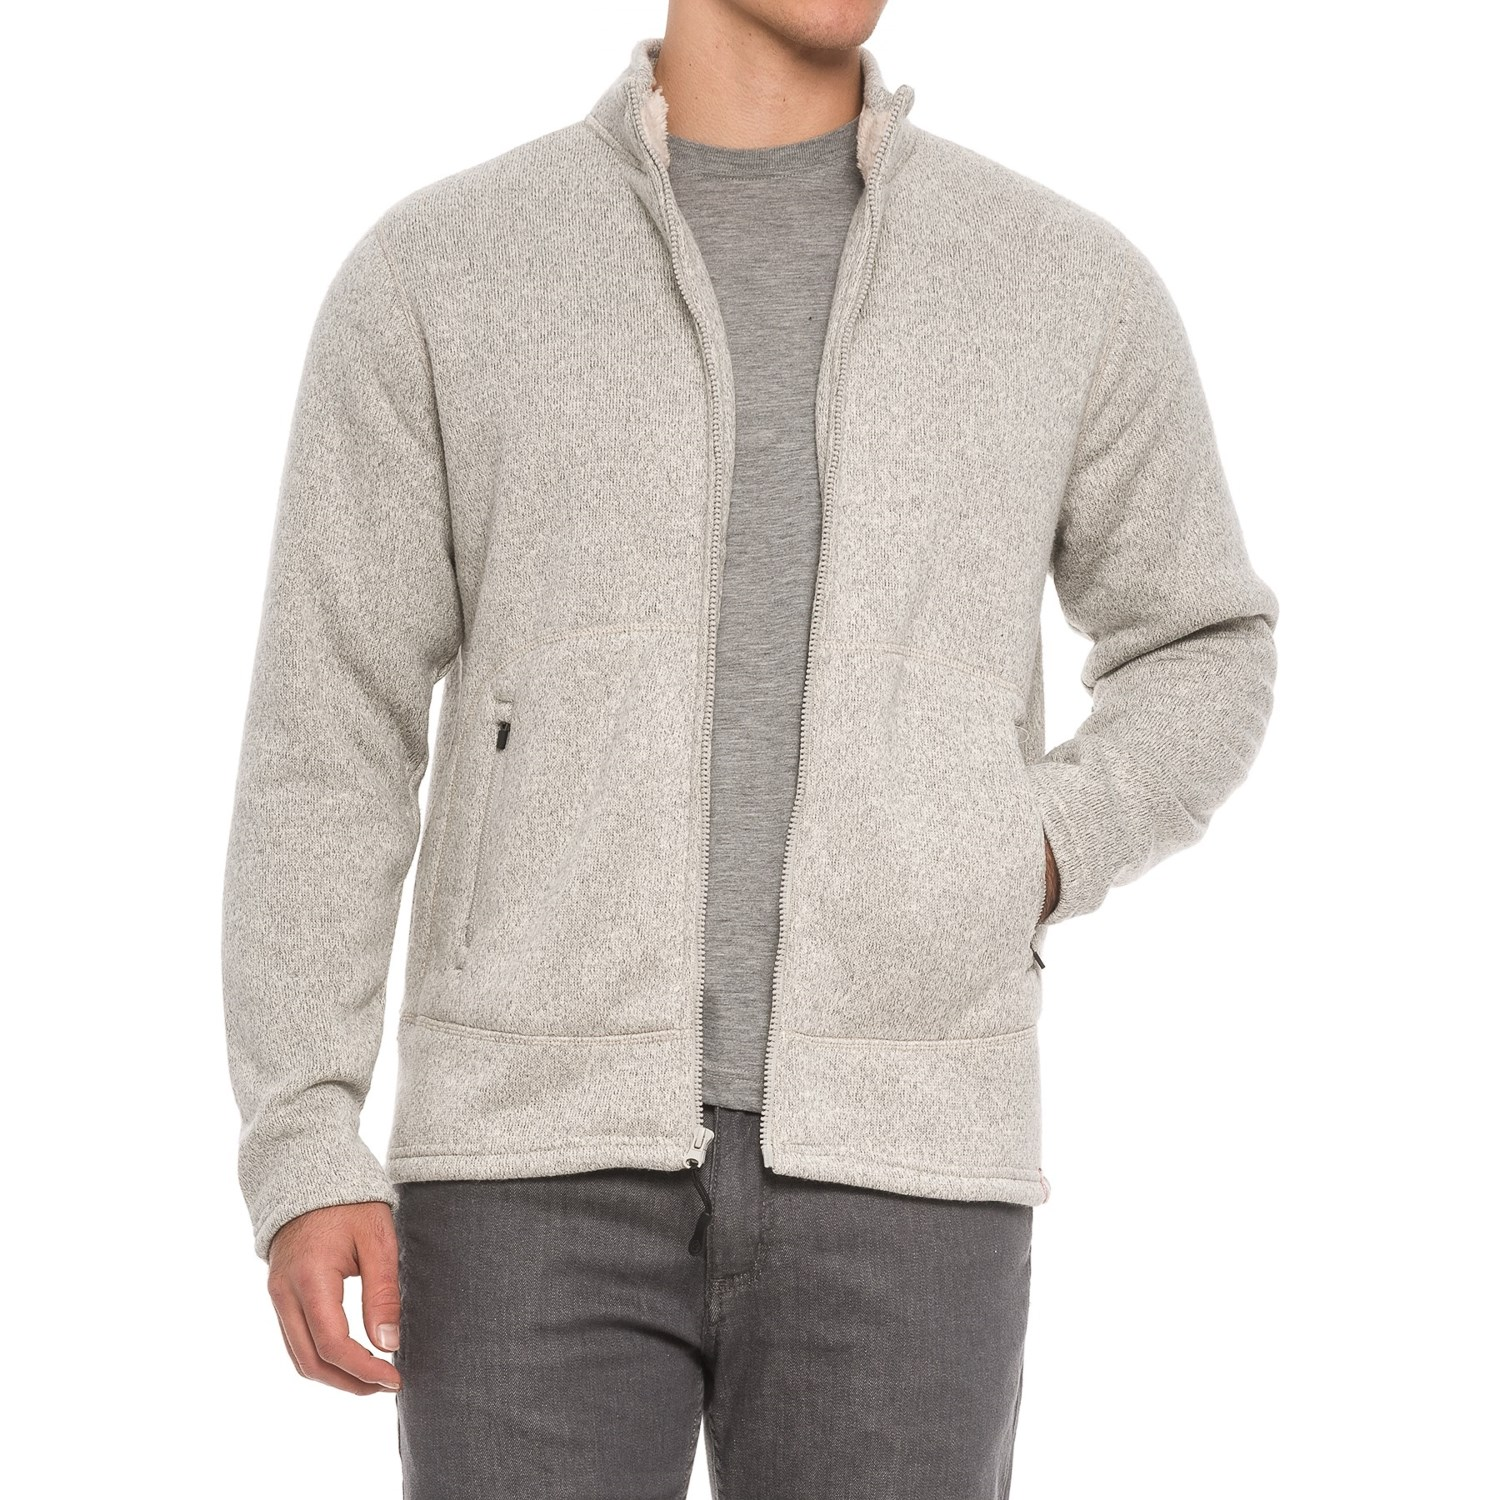 Coleman Fleece Bonded Full-Zip Sweater (For Men) - Save 63%